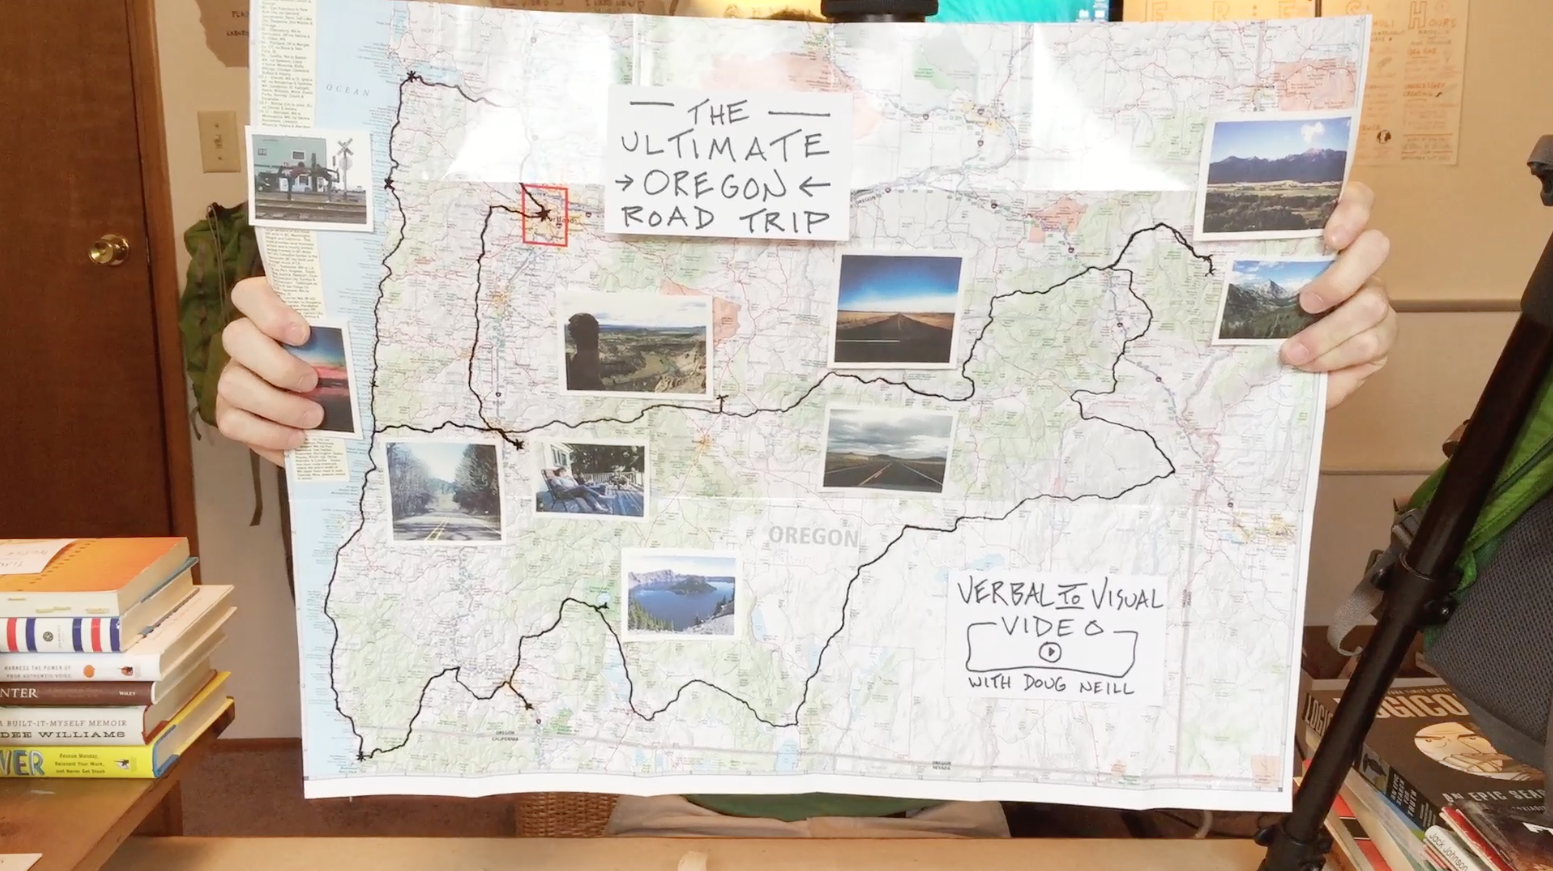 The Ultimate Oregon Road Trip - Verbal To Visual - Doug Neill